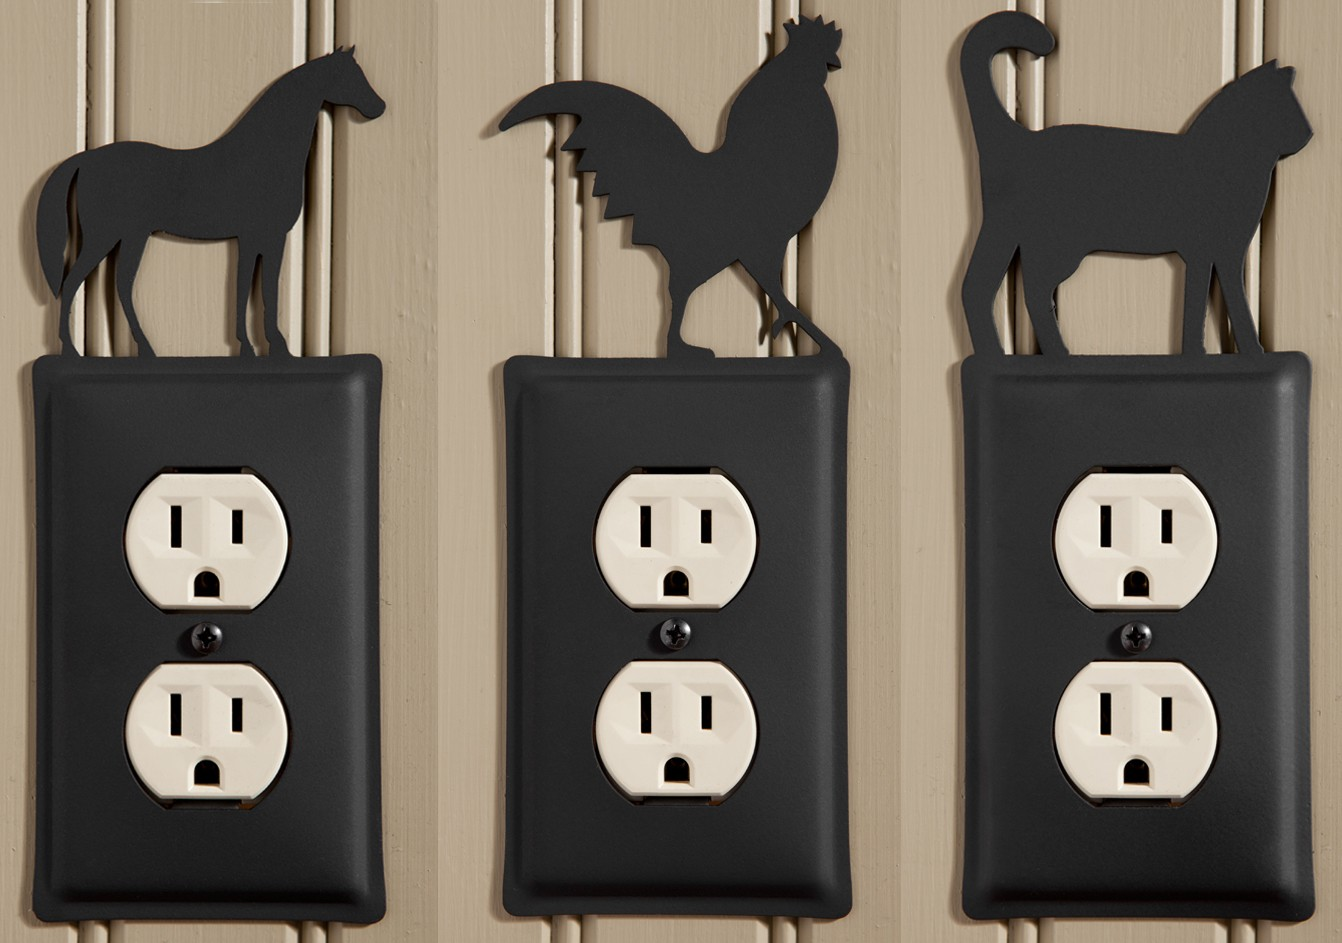 Wall Outlet Covers Decor Ideasdecor Ideas